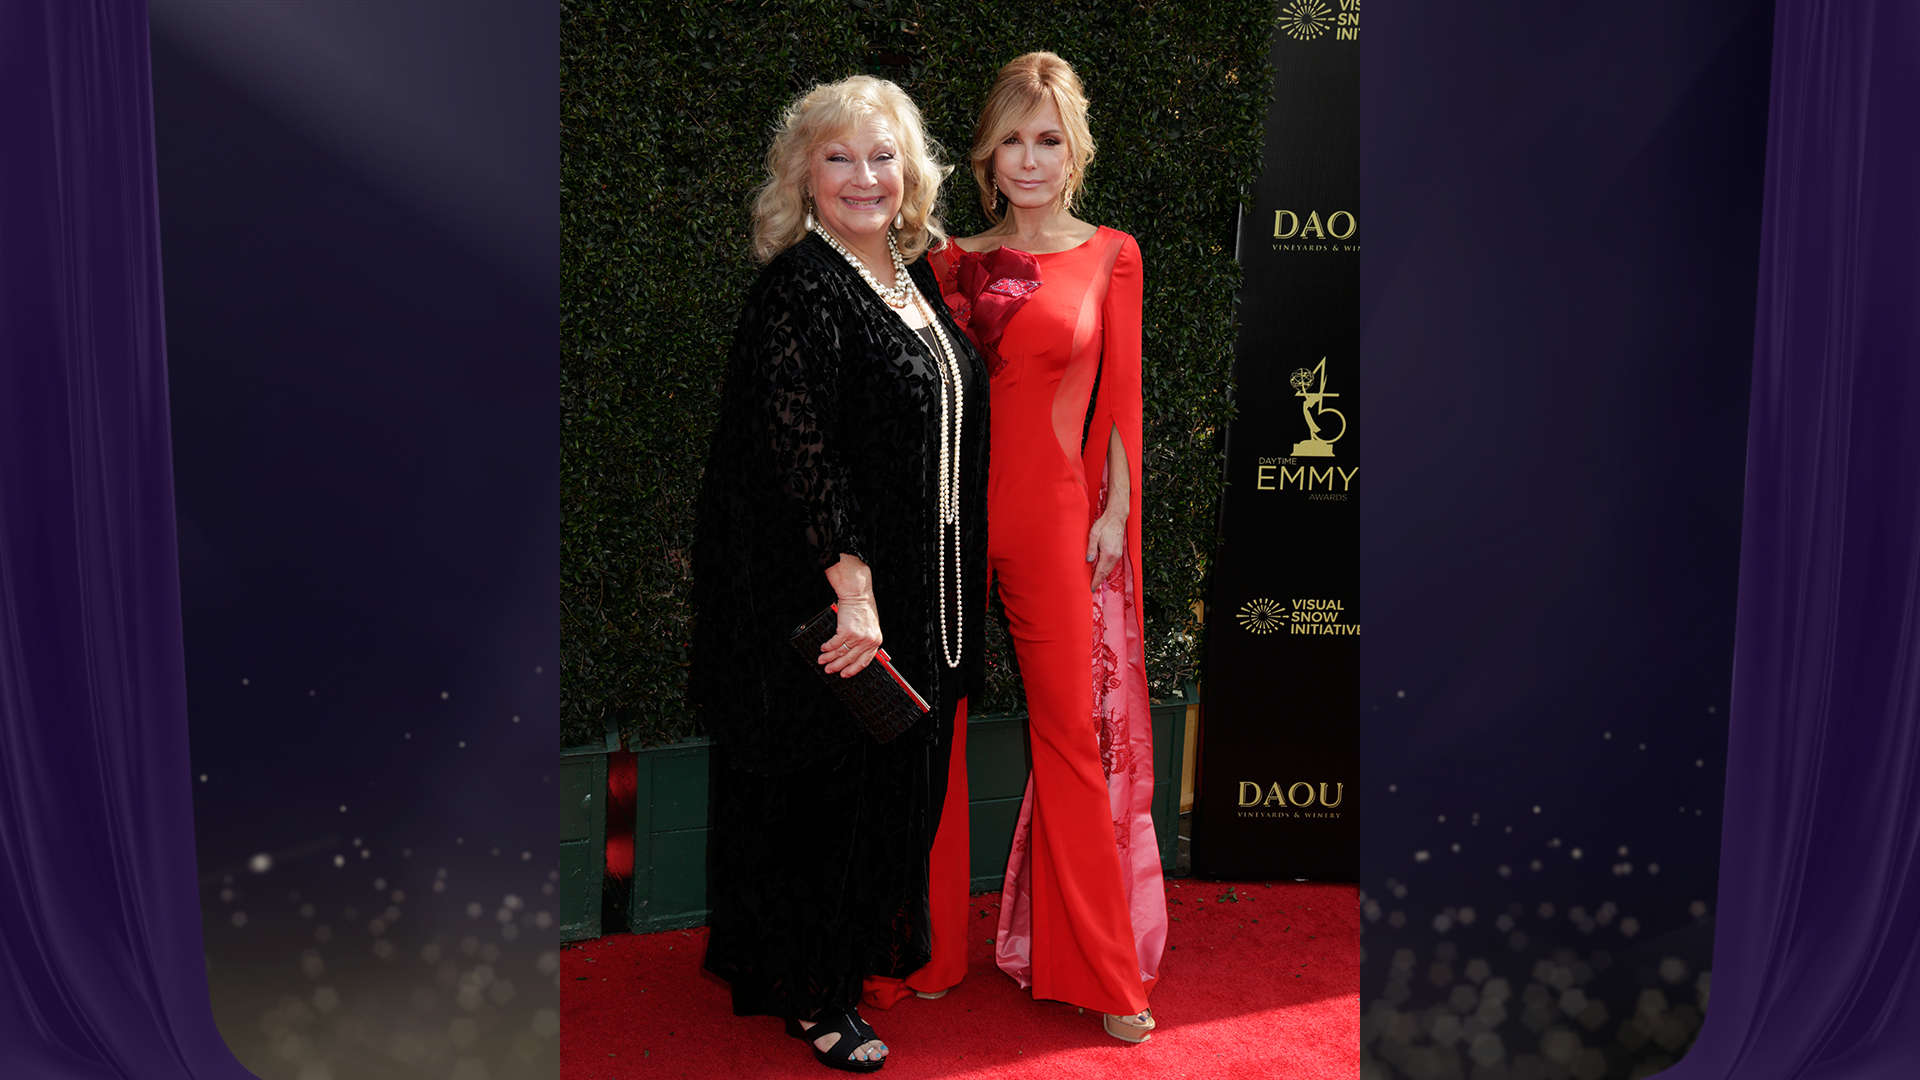 It's an Abbott family reunion on the red carpet when The Young and the Restless costars Beth Maitland and Tracey Bregman stop for a pic.